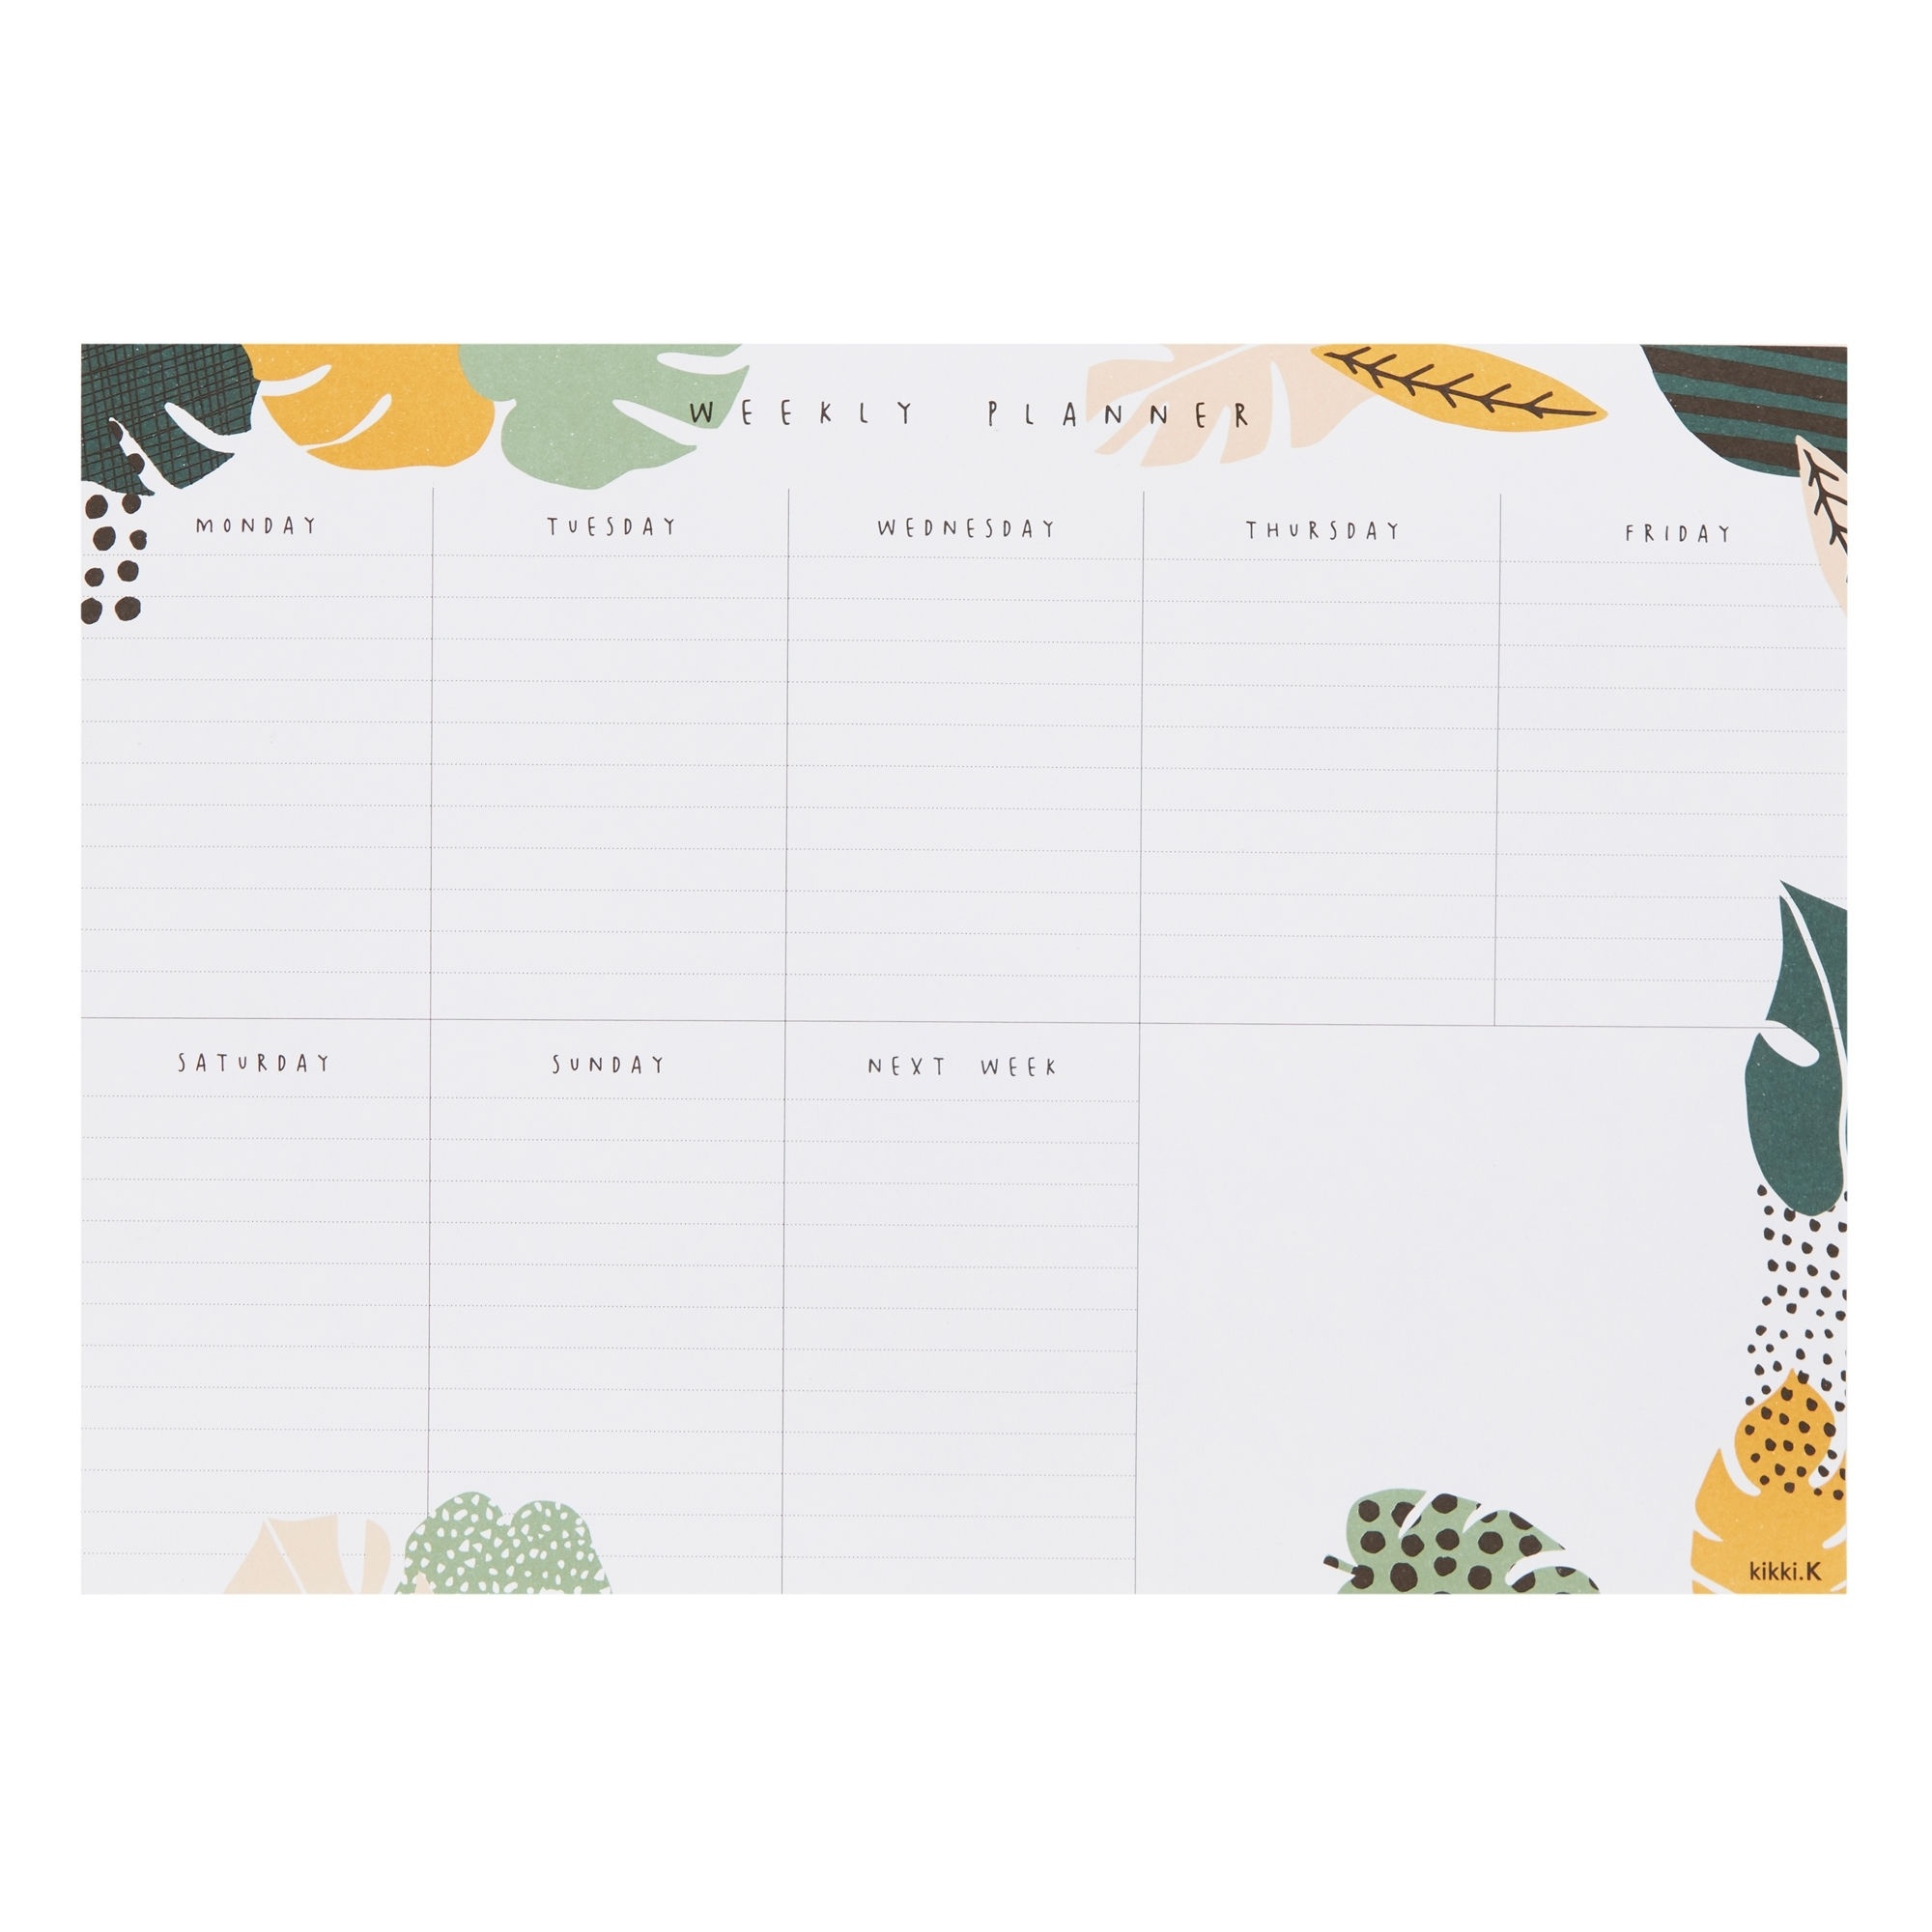 A4 Weekly Planner Pad White/evergreen: Living Well